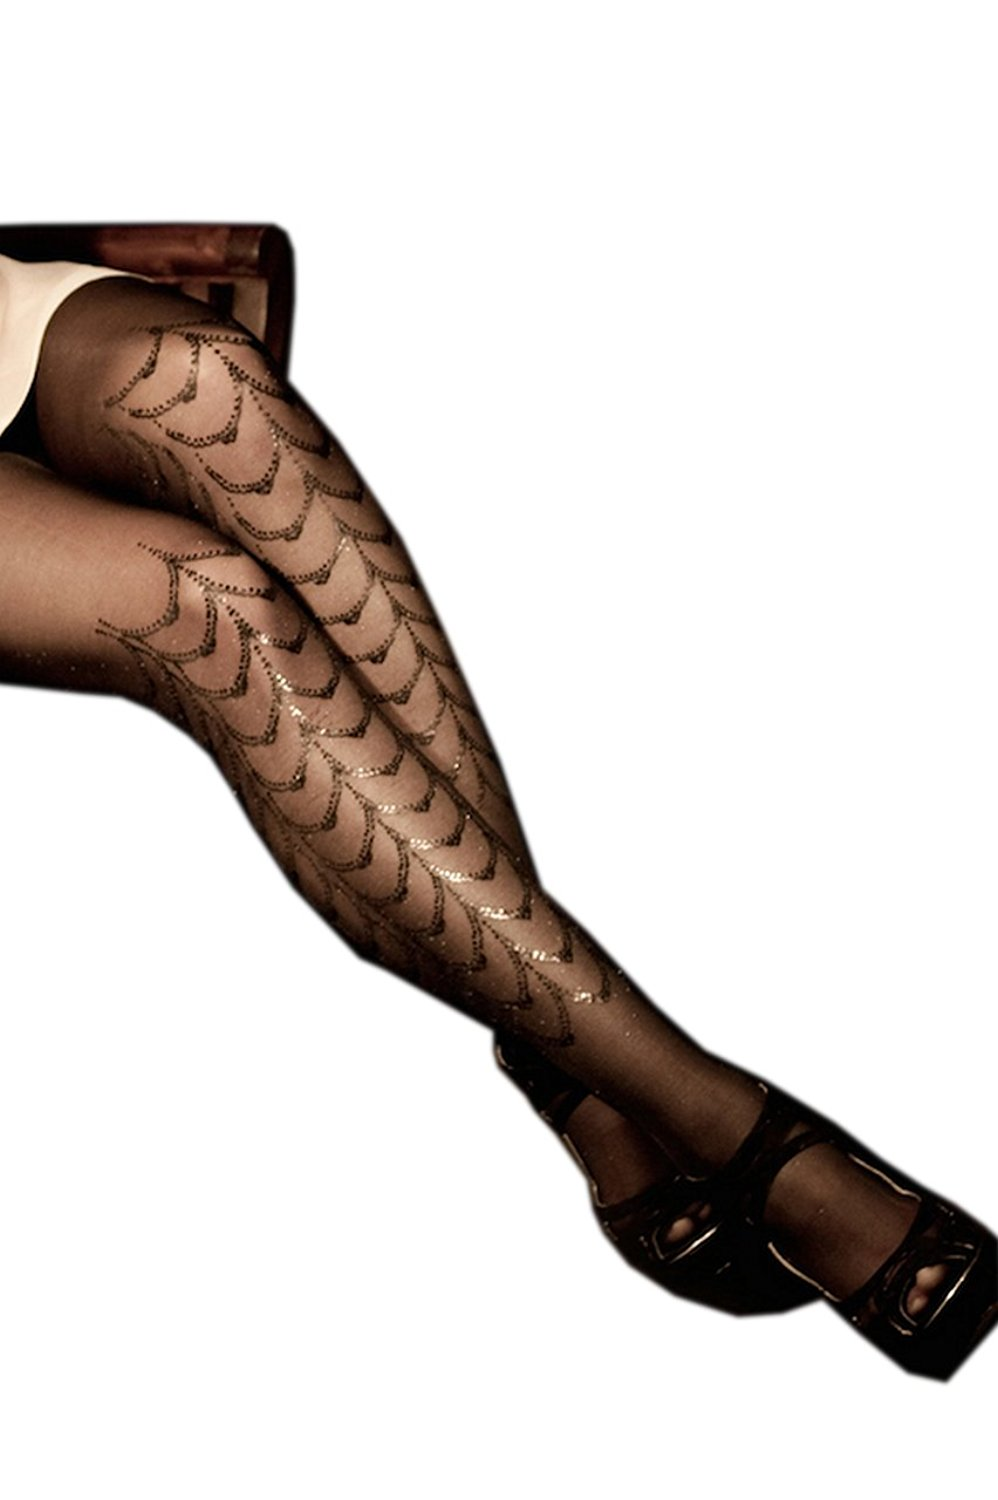 c52bf5741ae64 Get Quotations · Stern Tights Cabaret Print Design Sheer Black & Black  Tights Full Stockings